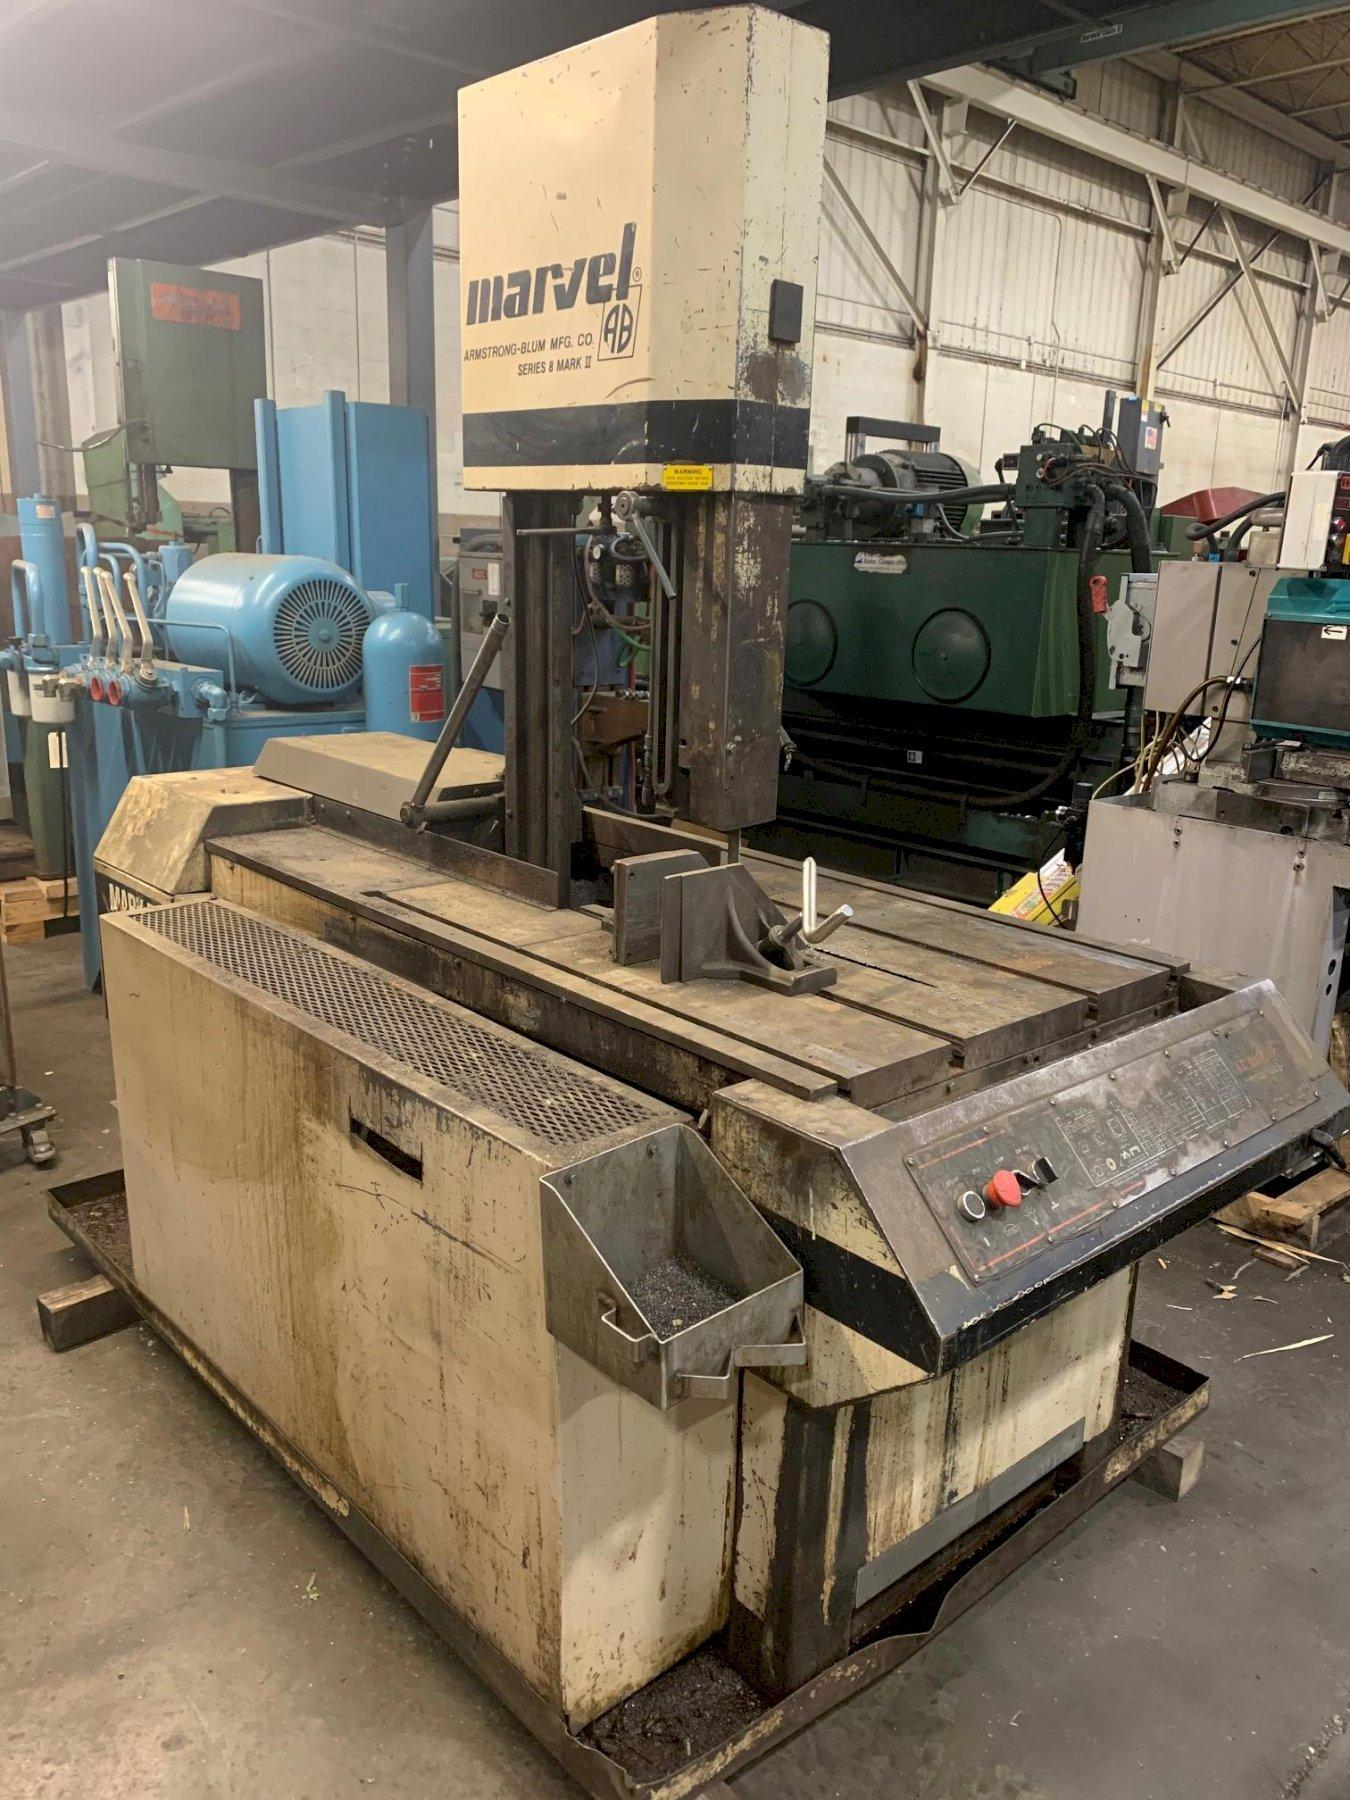 """USED MARVEL VERTICAL BANDSAW MODEL 8 Mark II, 18"""" x 22"""", Stock No. 10666, YEAR 1990"""